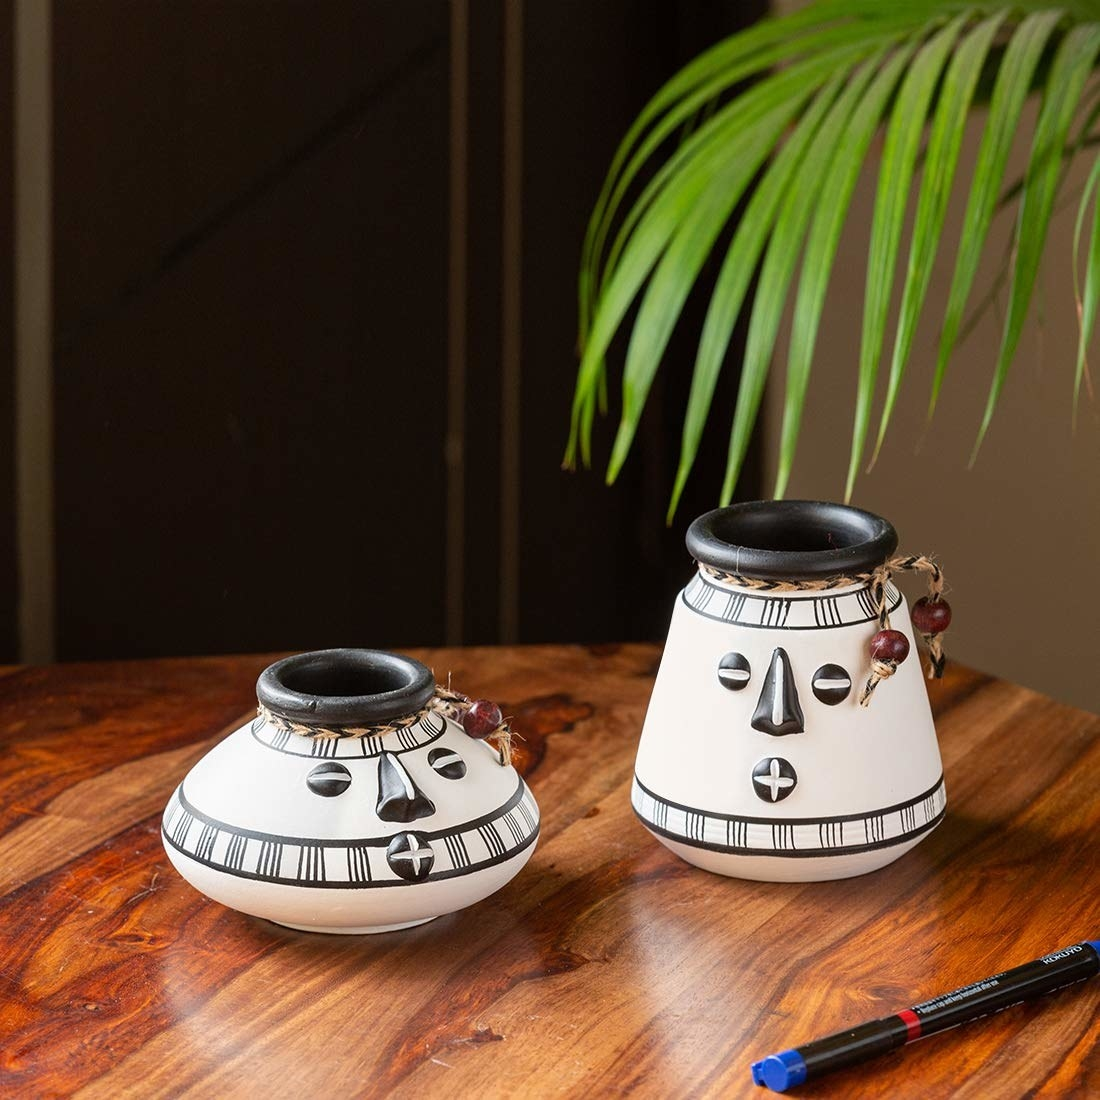 Two different sized pots in black and white with eyes, nose and mouth painted on it